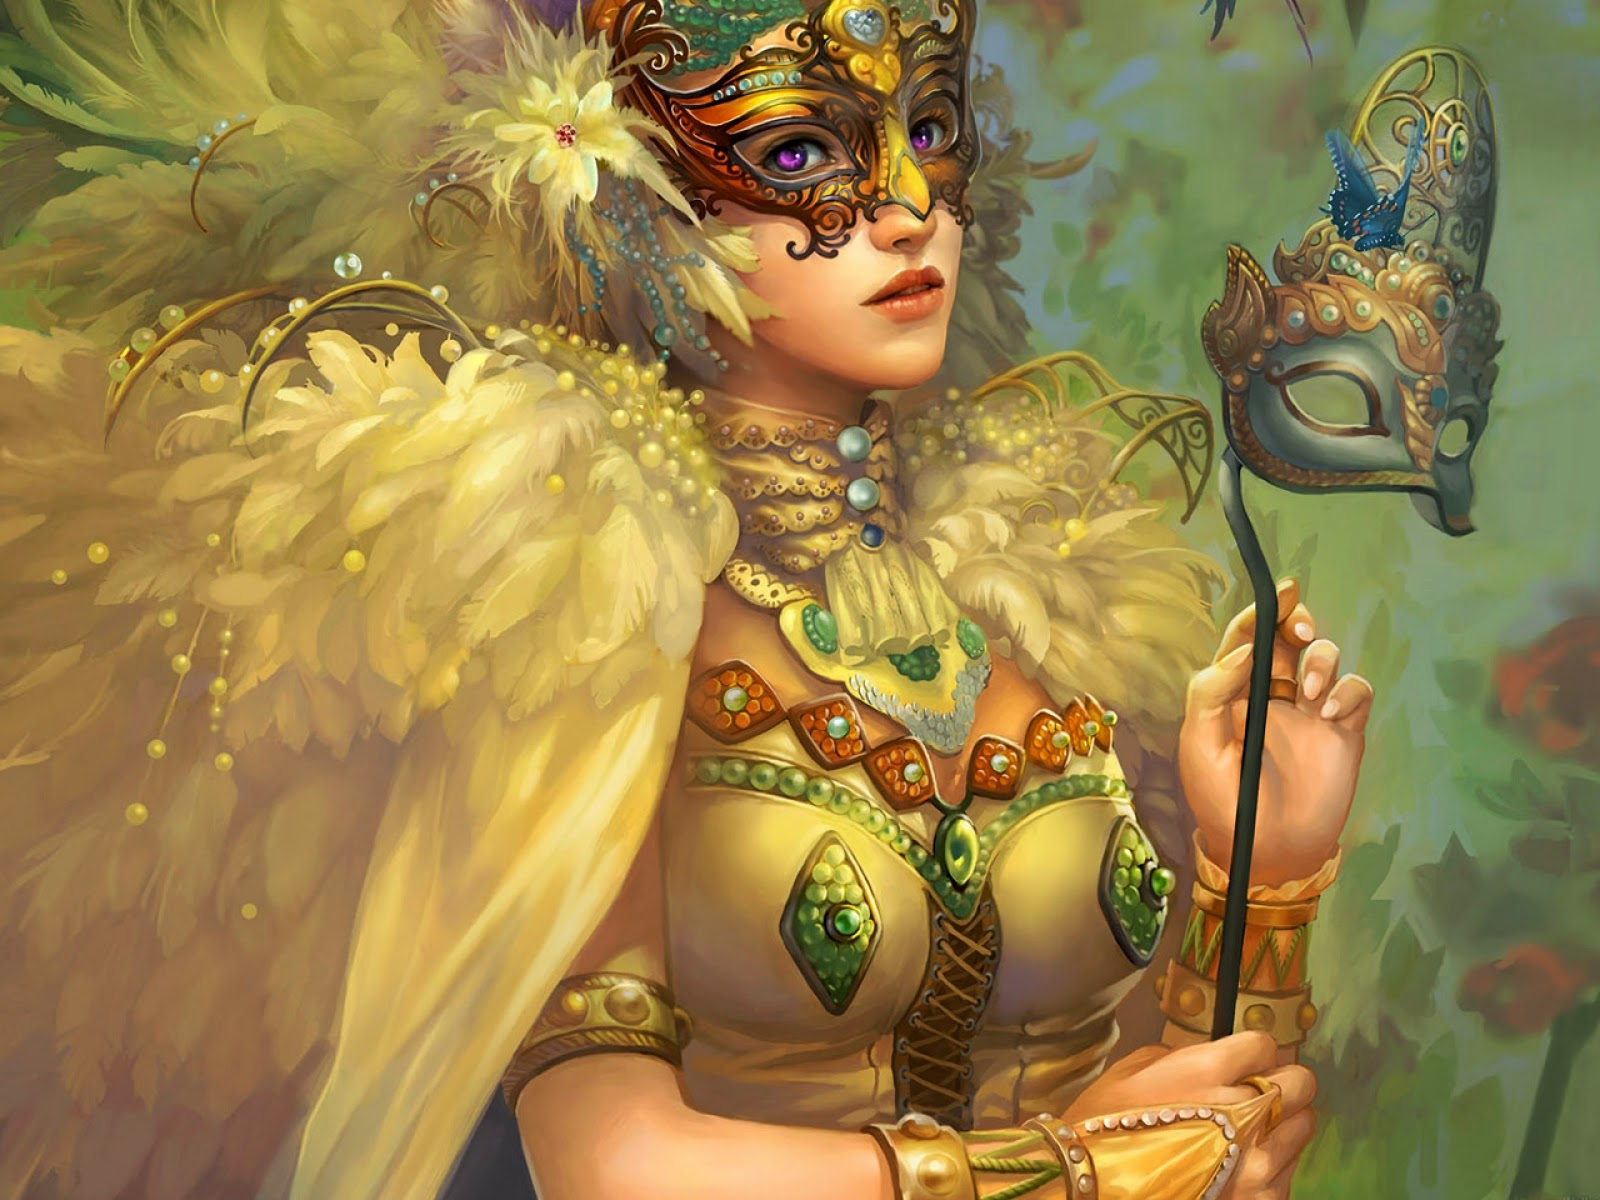 Girl With Spear Wallpaper 3d Fantasy Girls Hd Wallpapers Awesome Wallpapers